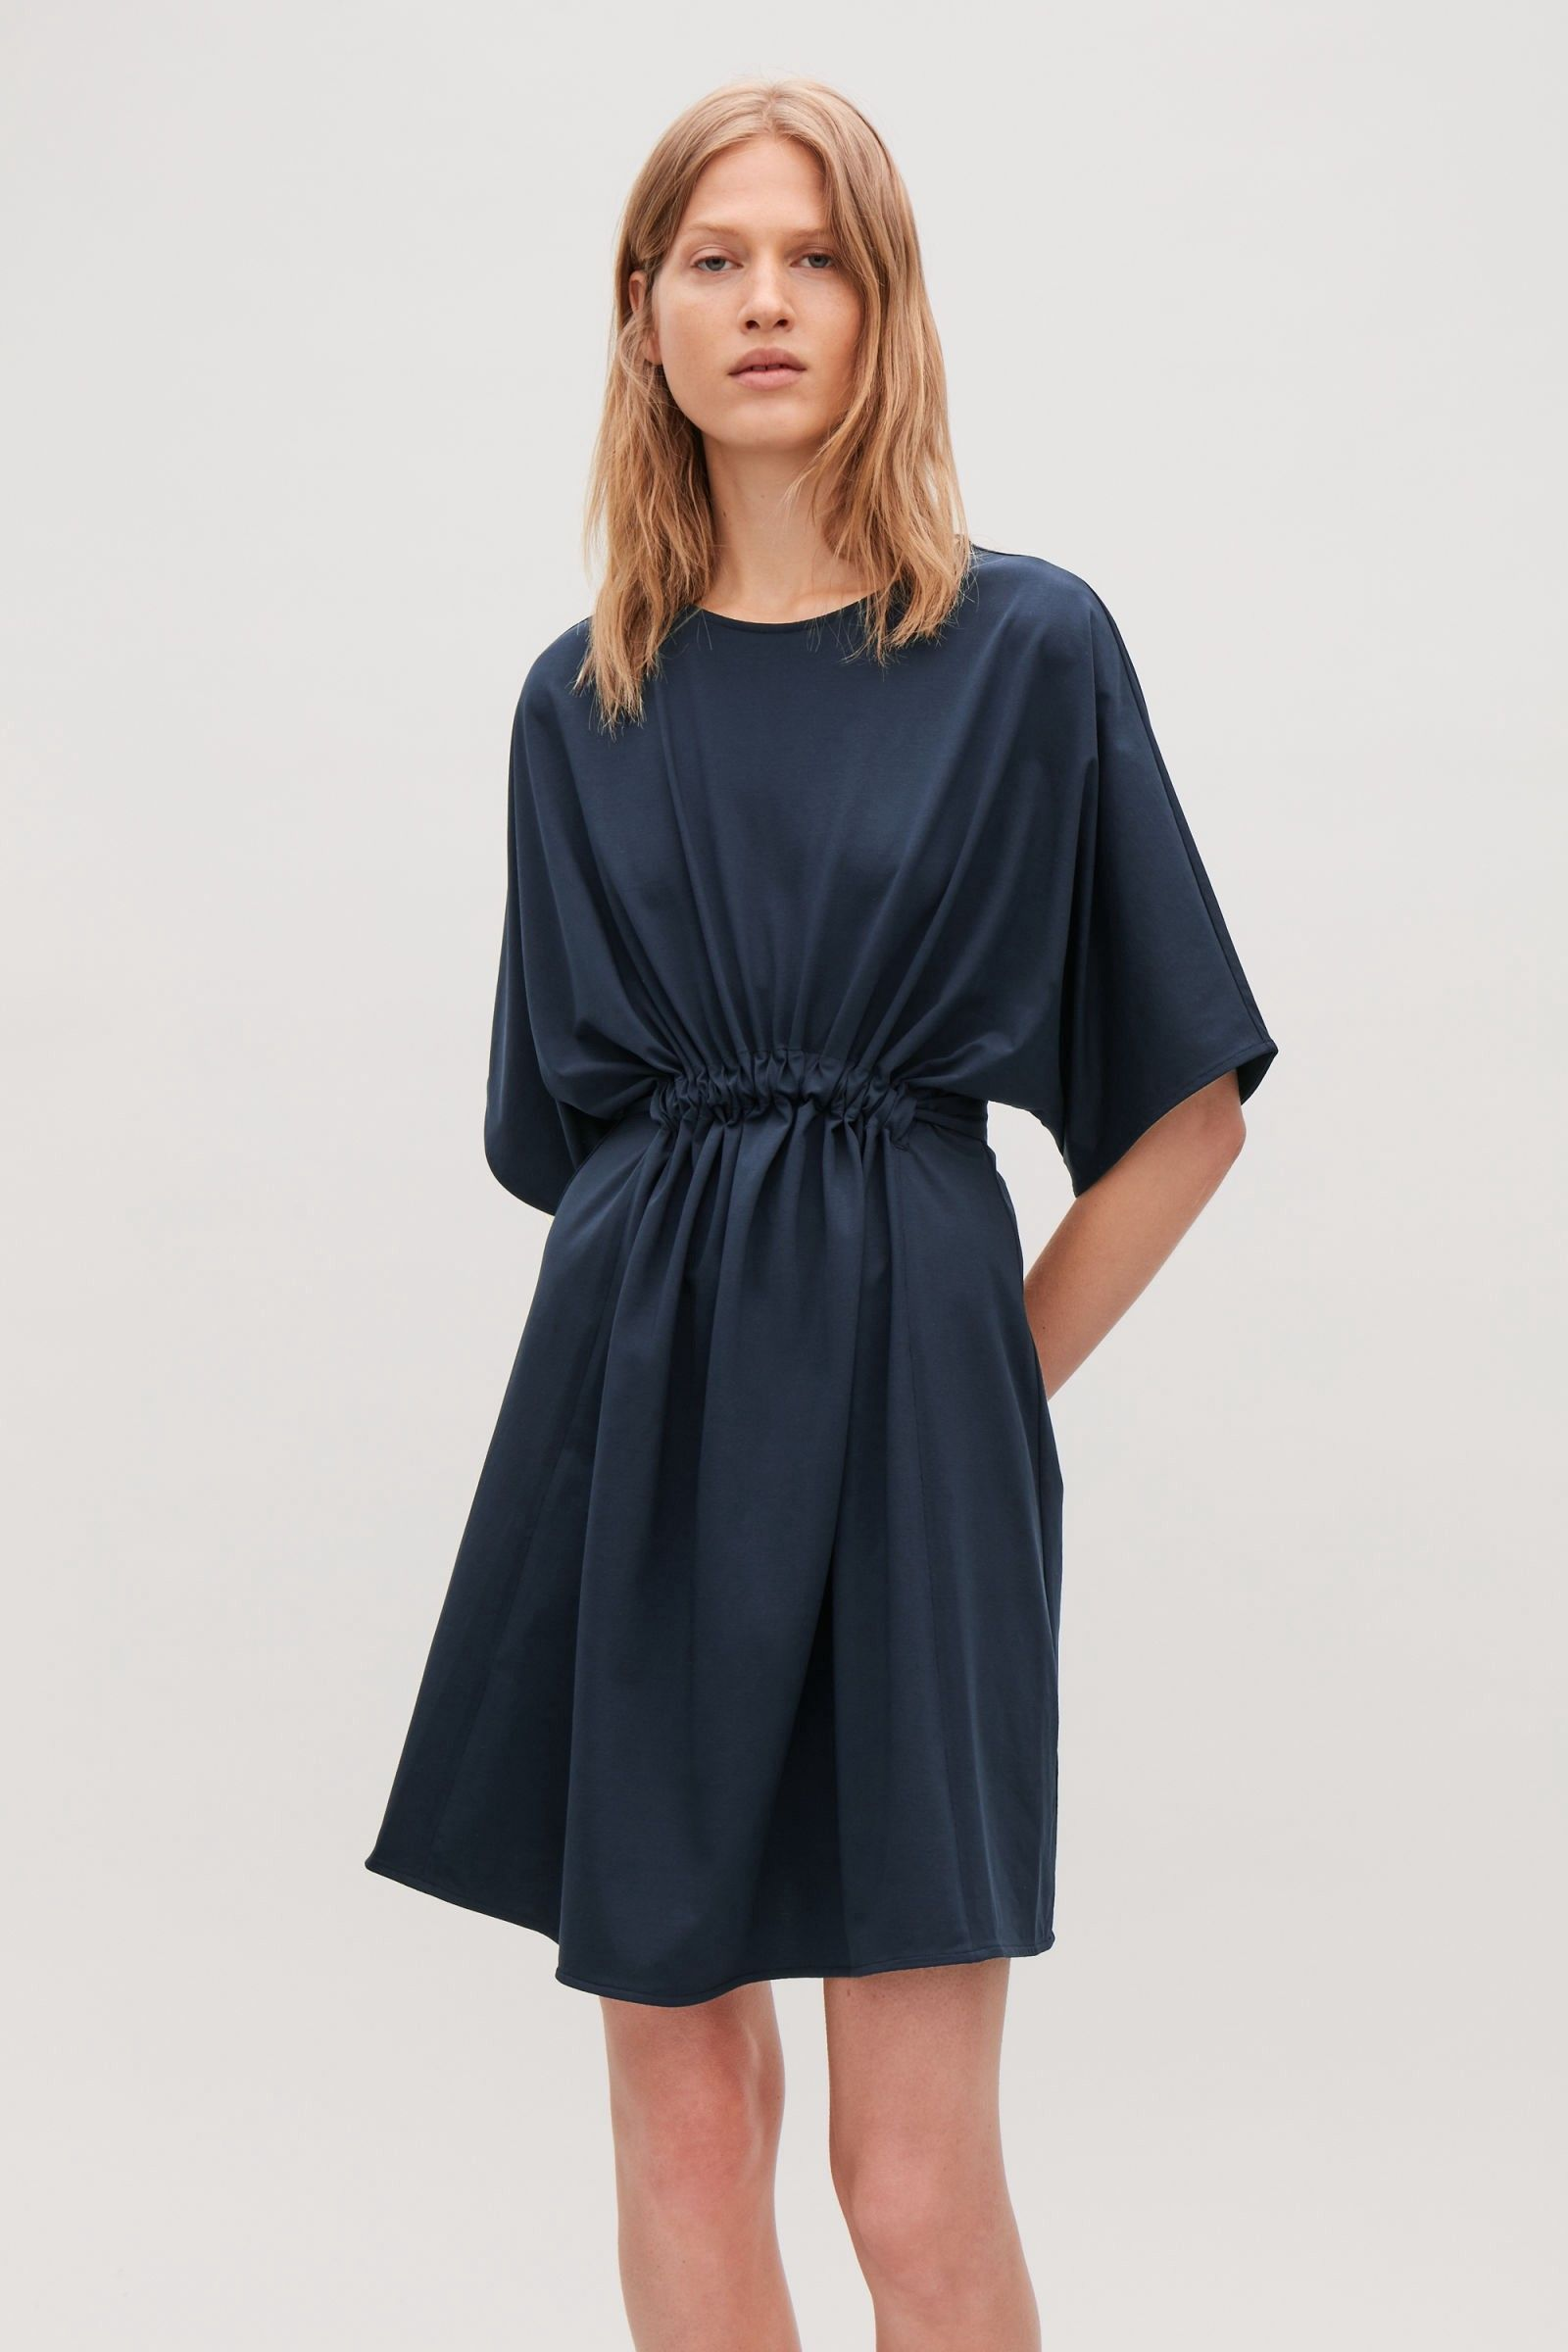 Cos green dress 2018  Cos Jersey Dress With Gathered Detail  Navy XS  Products